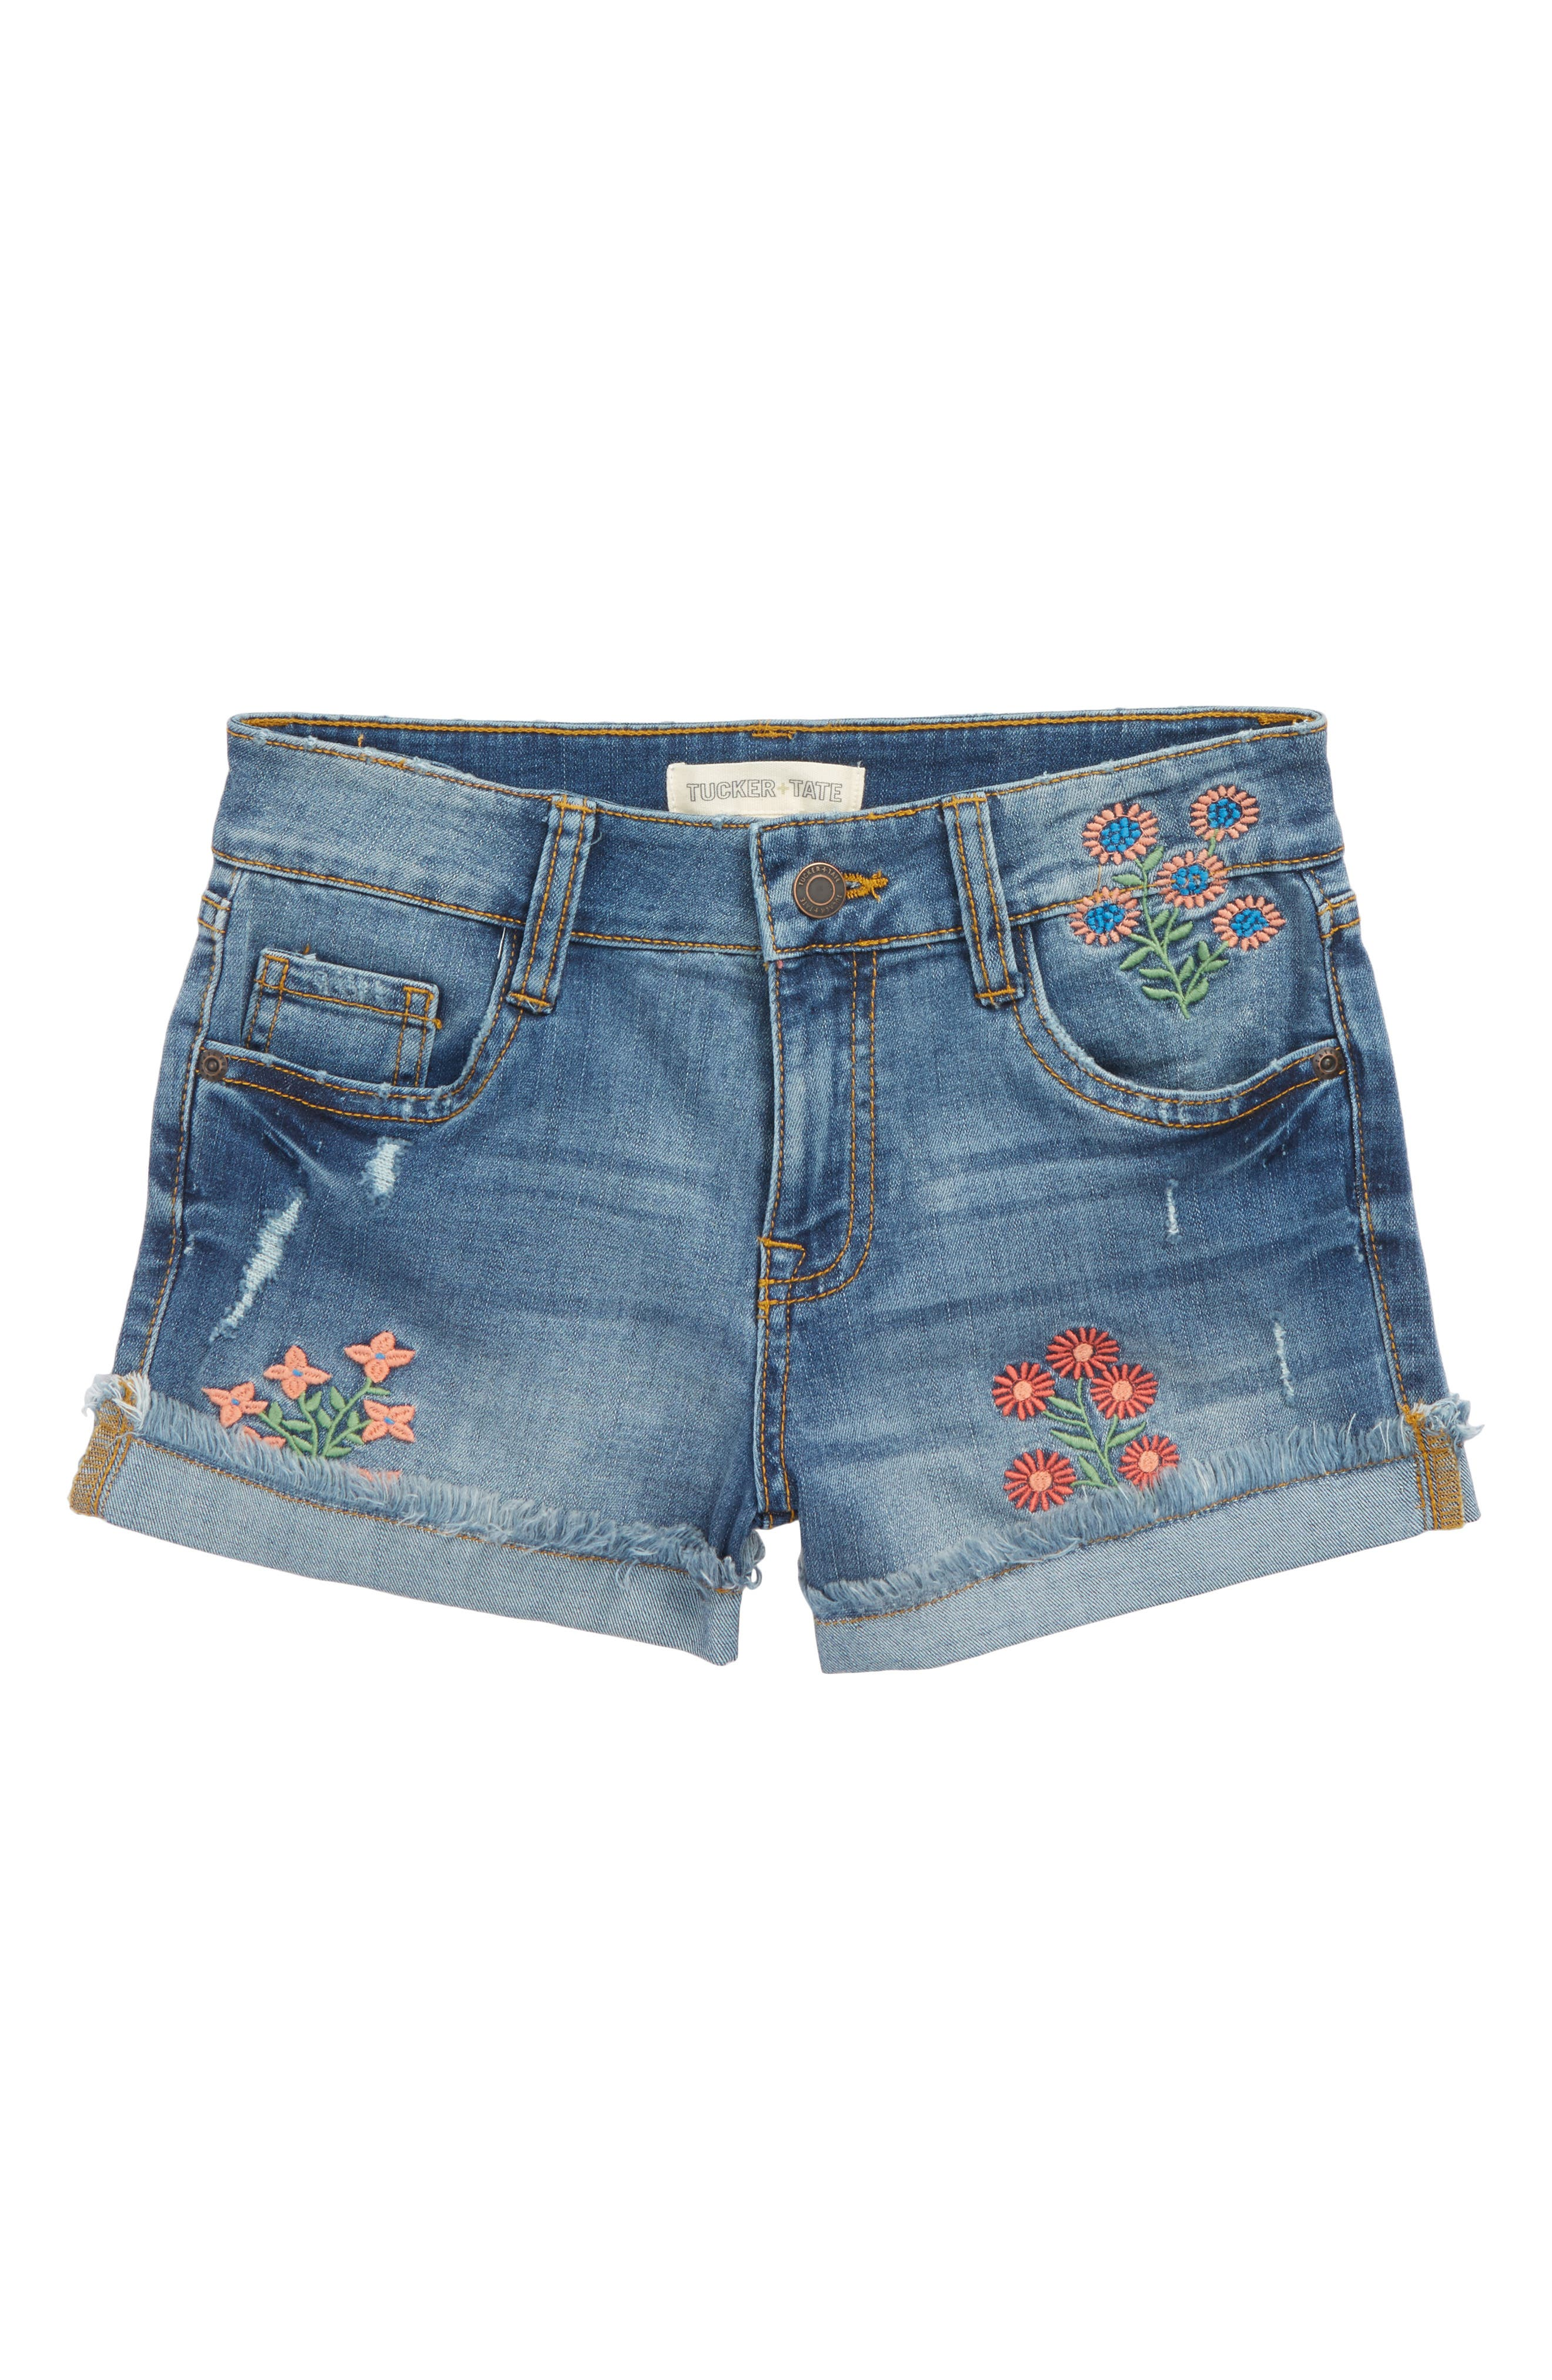 Flower Embroidered Denim Shorts,                             Main thumbnail 1, color,                             450